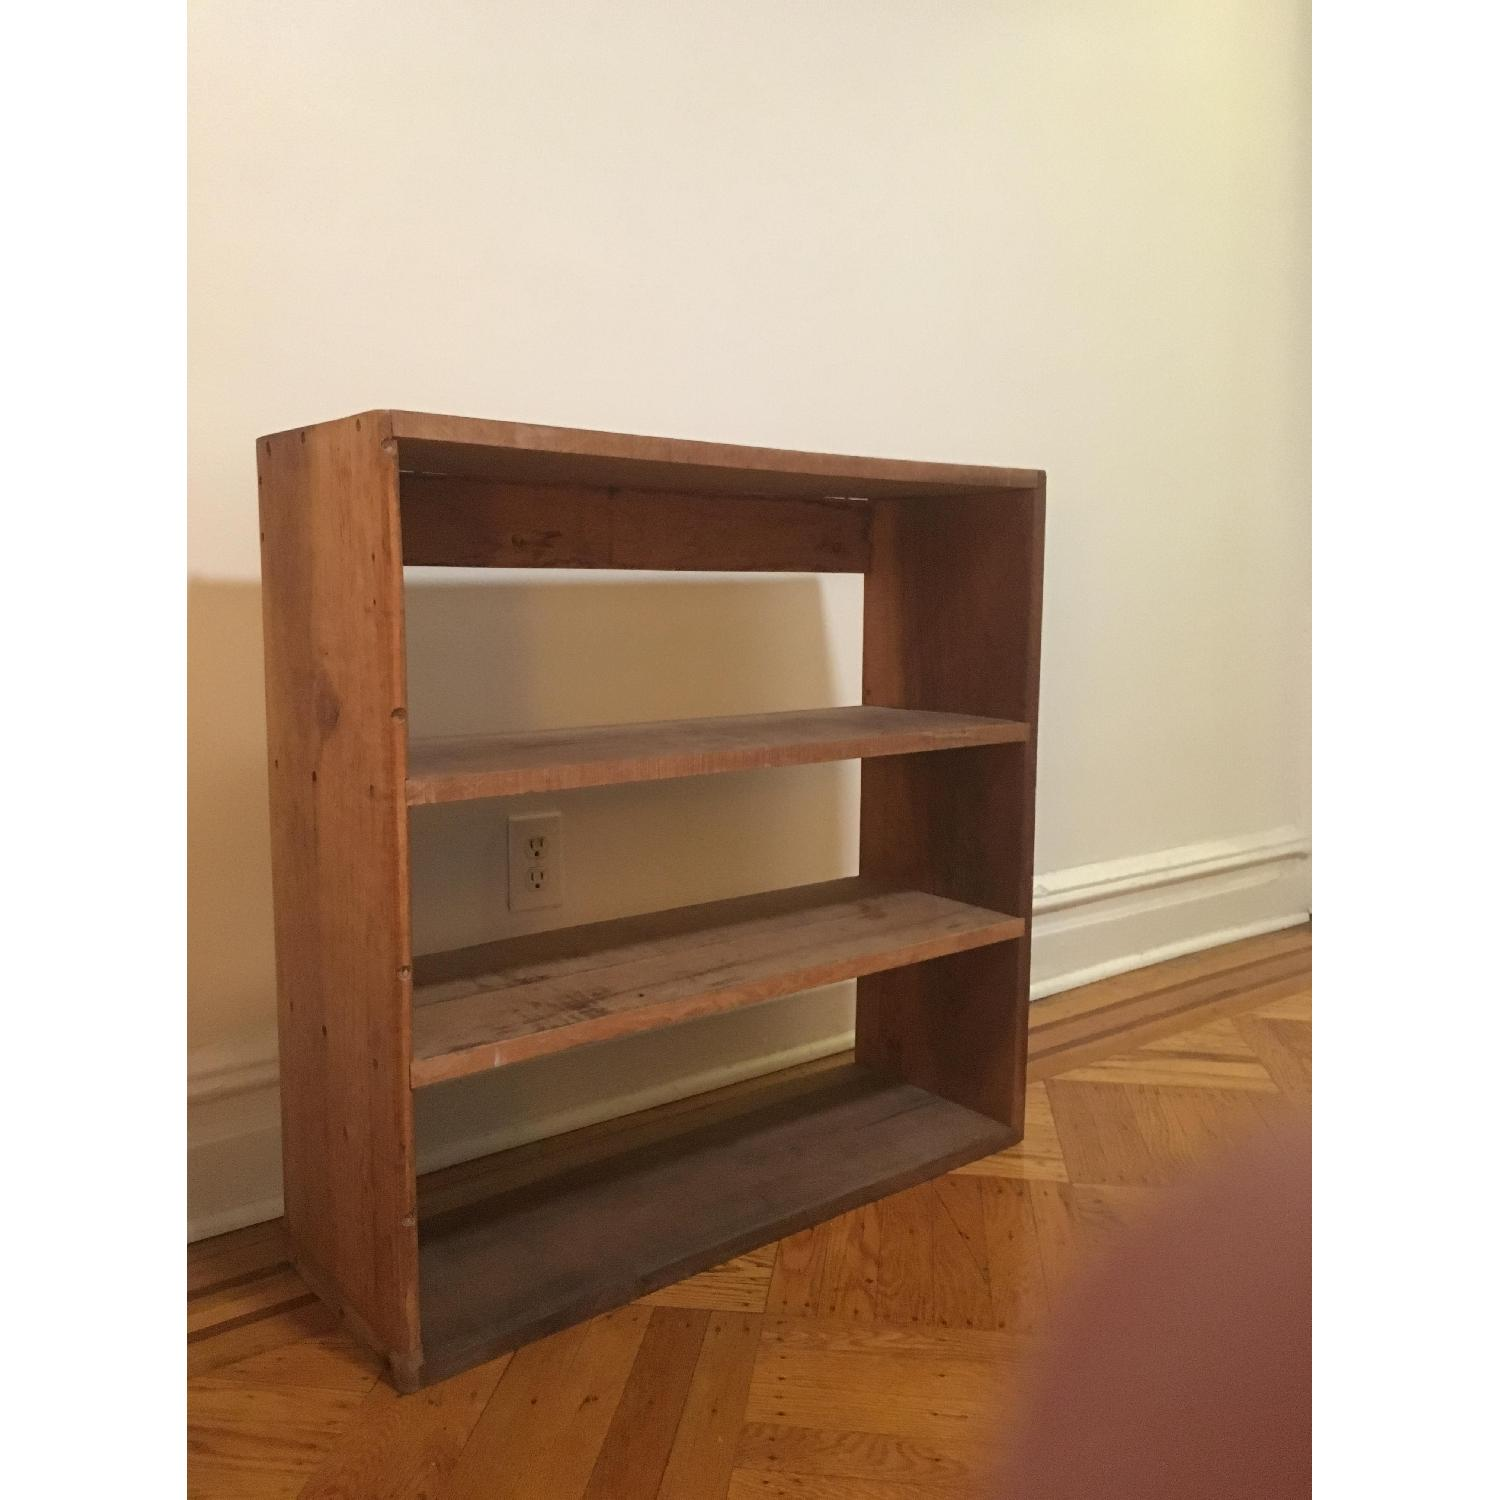 Vintage Bookcase w/ 3 Shelves - image-3